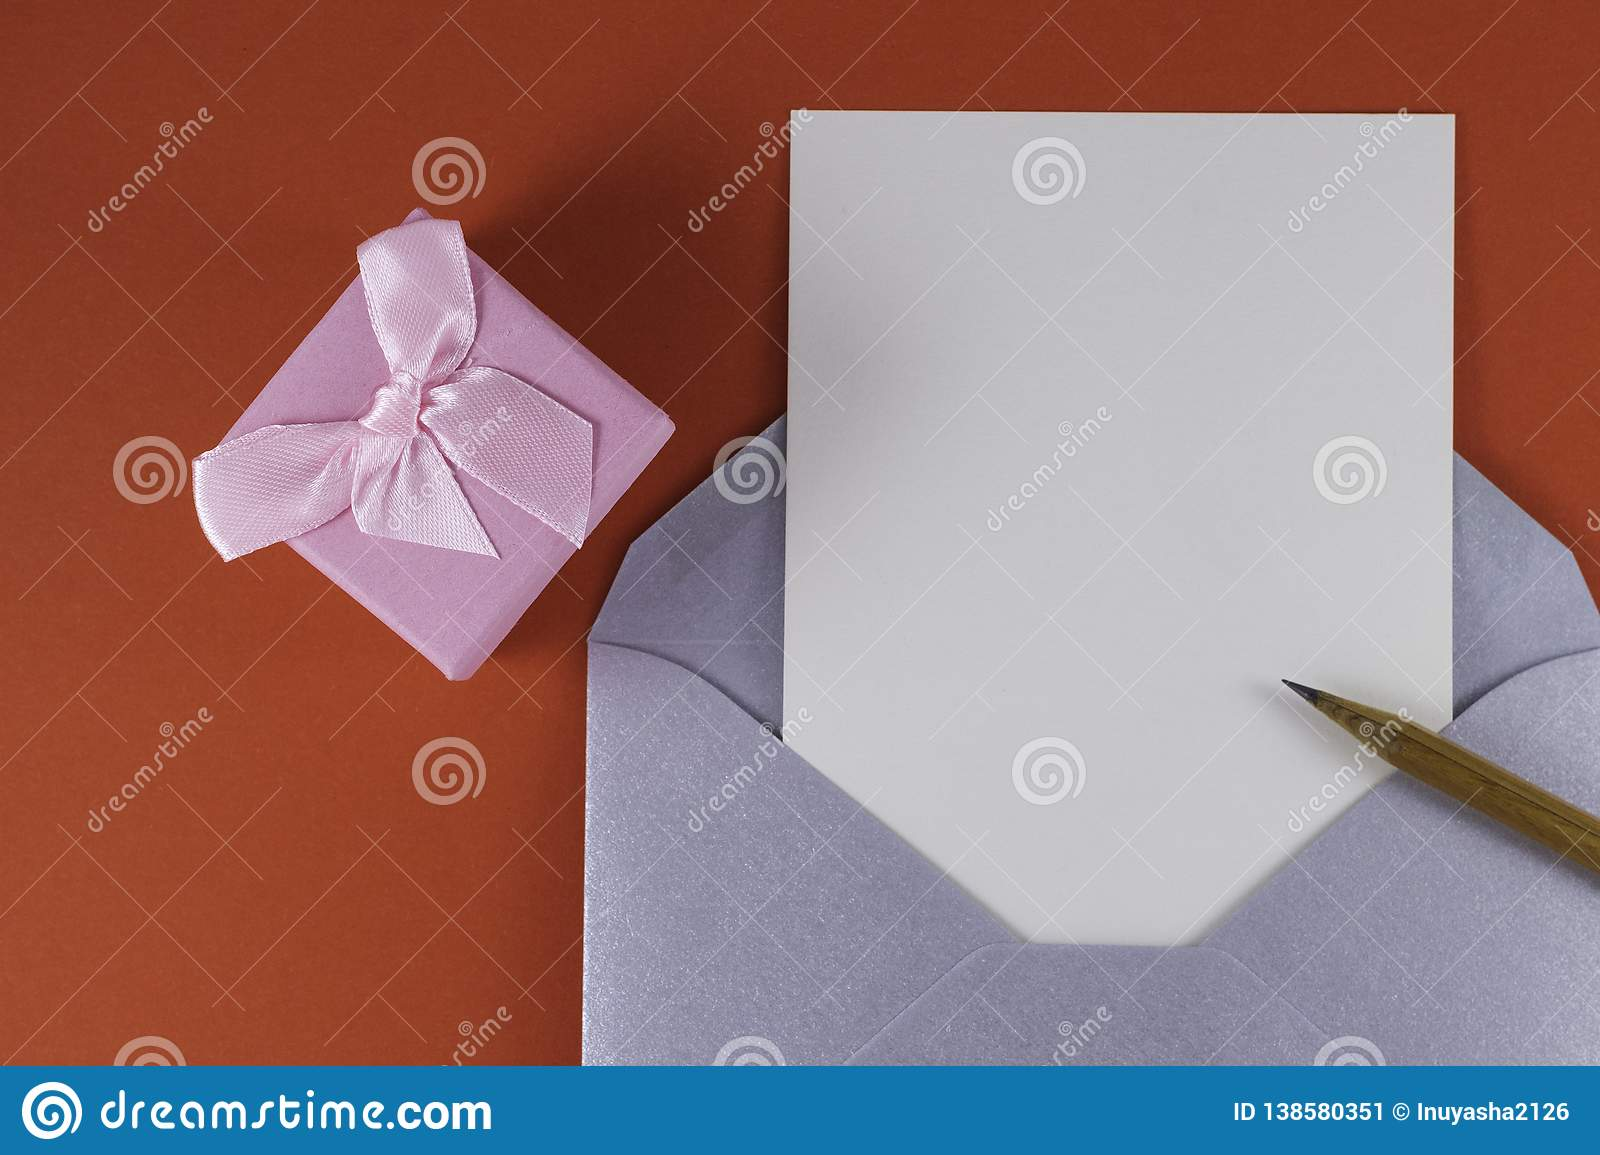 Silver open envelope with white blank letter inside Wooden pencil near and small pink gift box on a red background